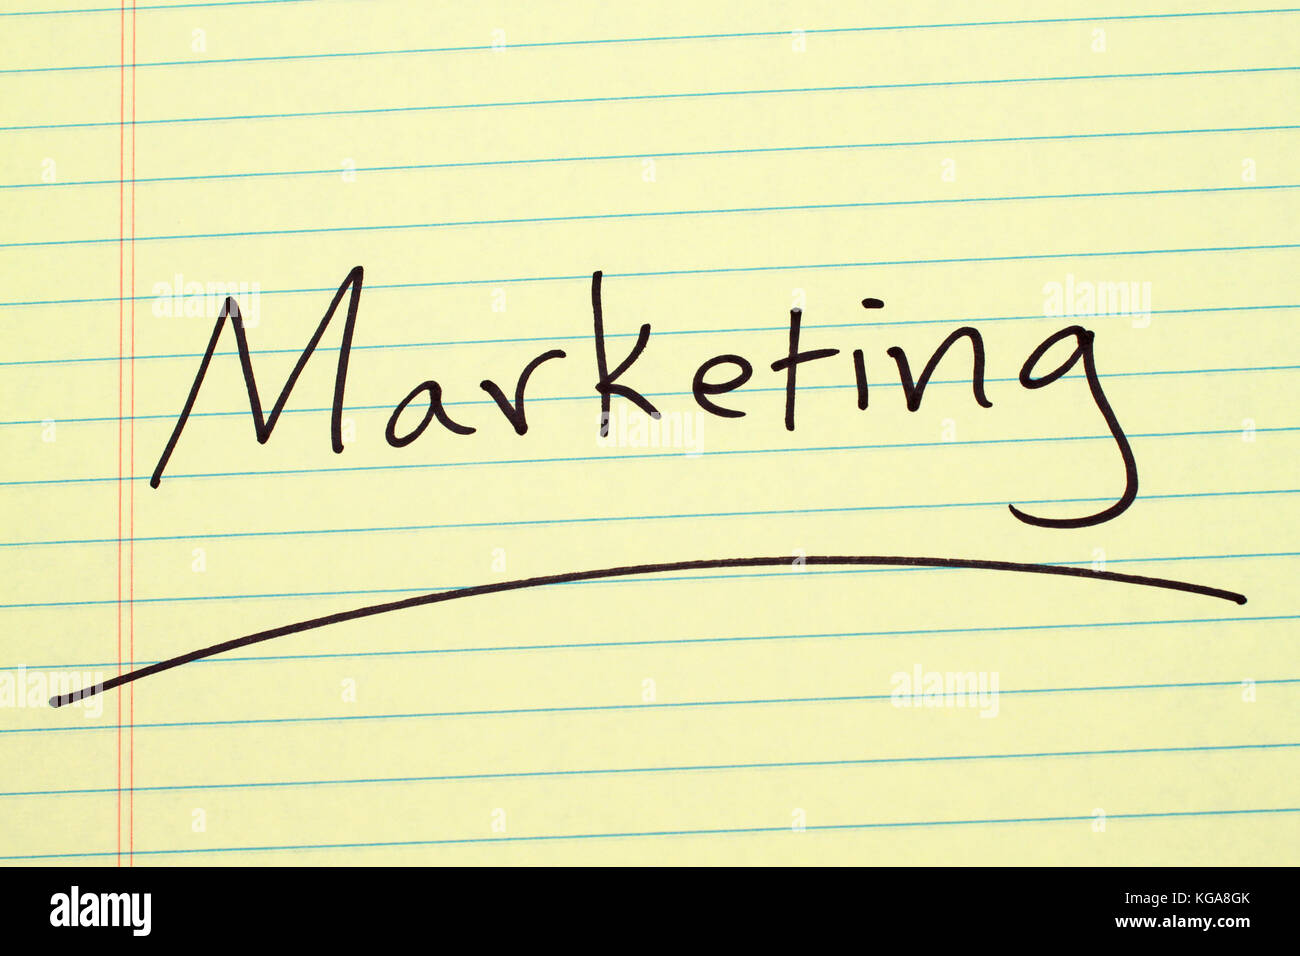 The word 'Marketing' underlined on a yellow legal pad - Stock Image